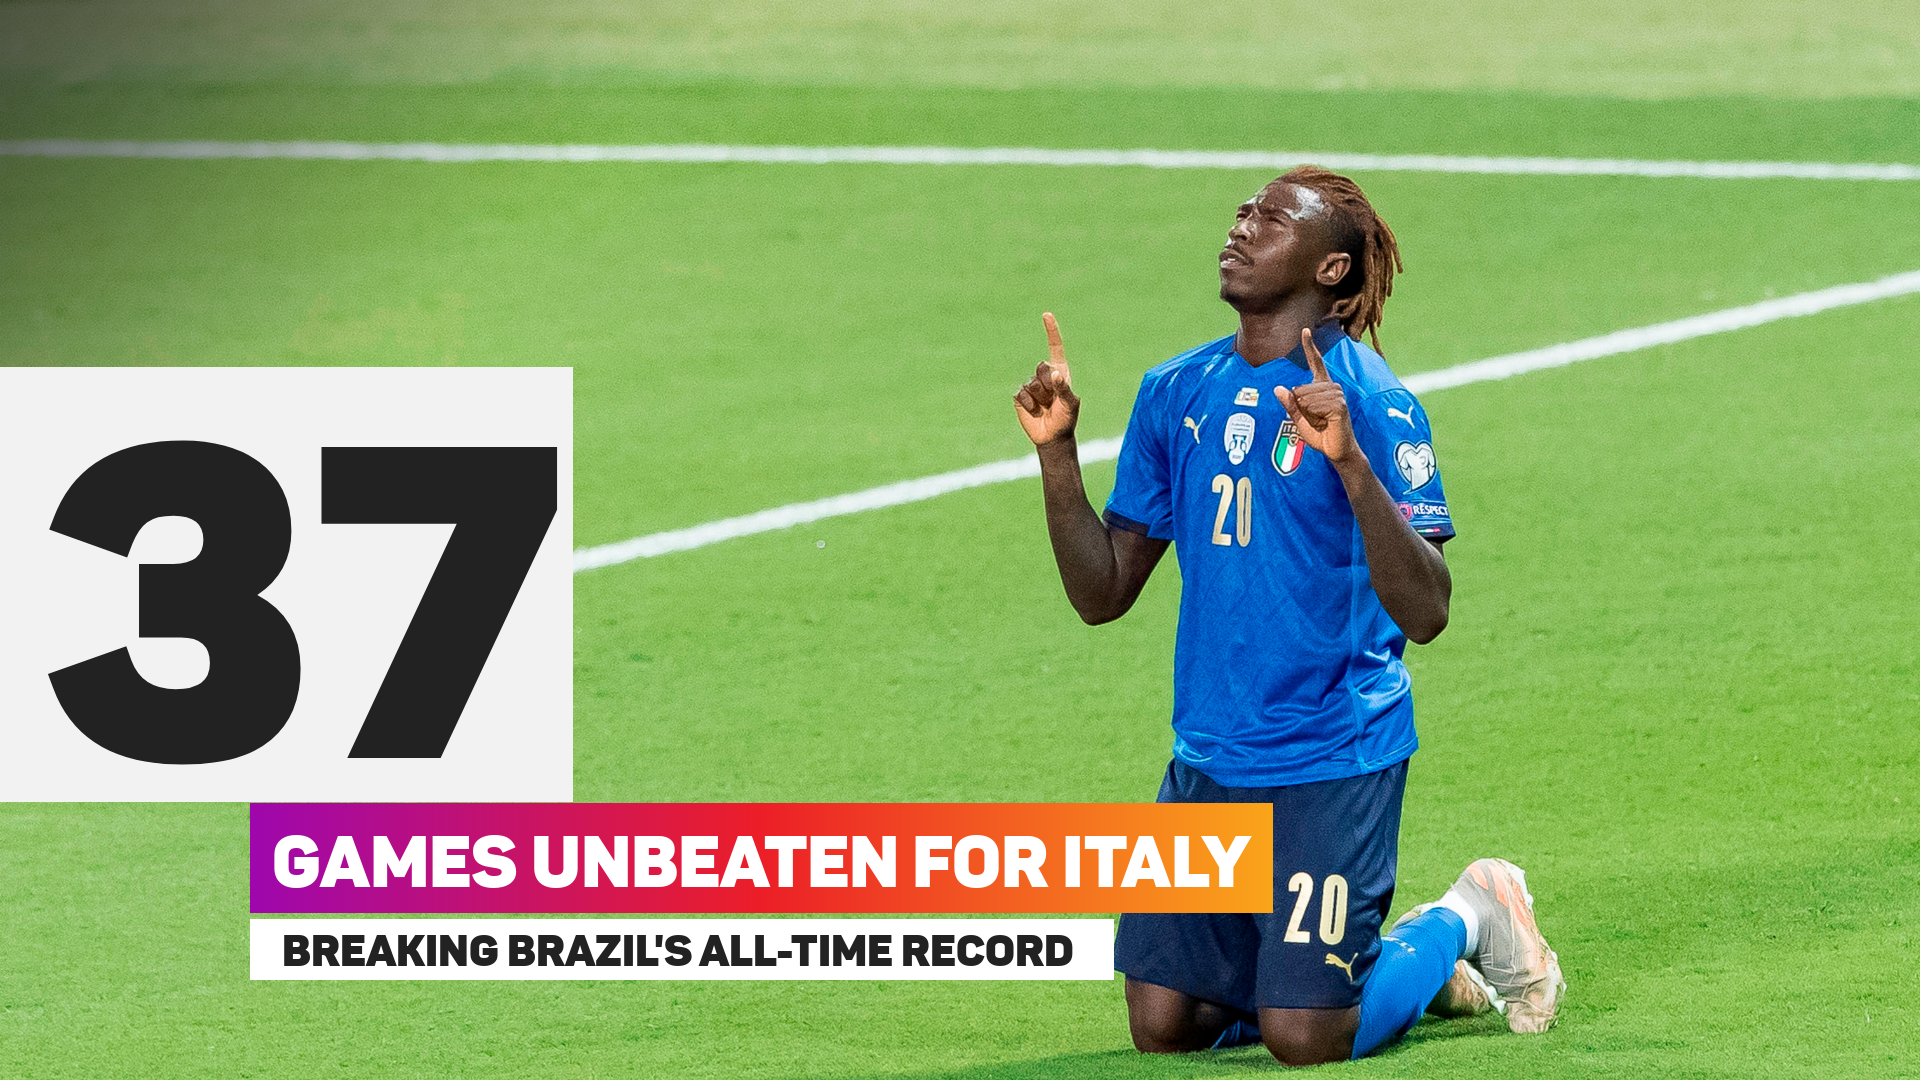 Italy set all-time unbeaten record